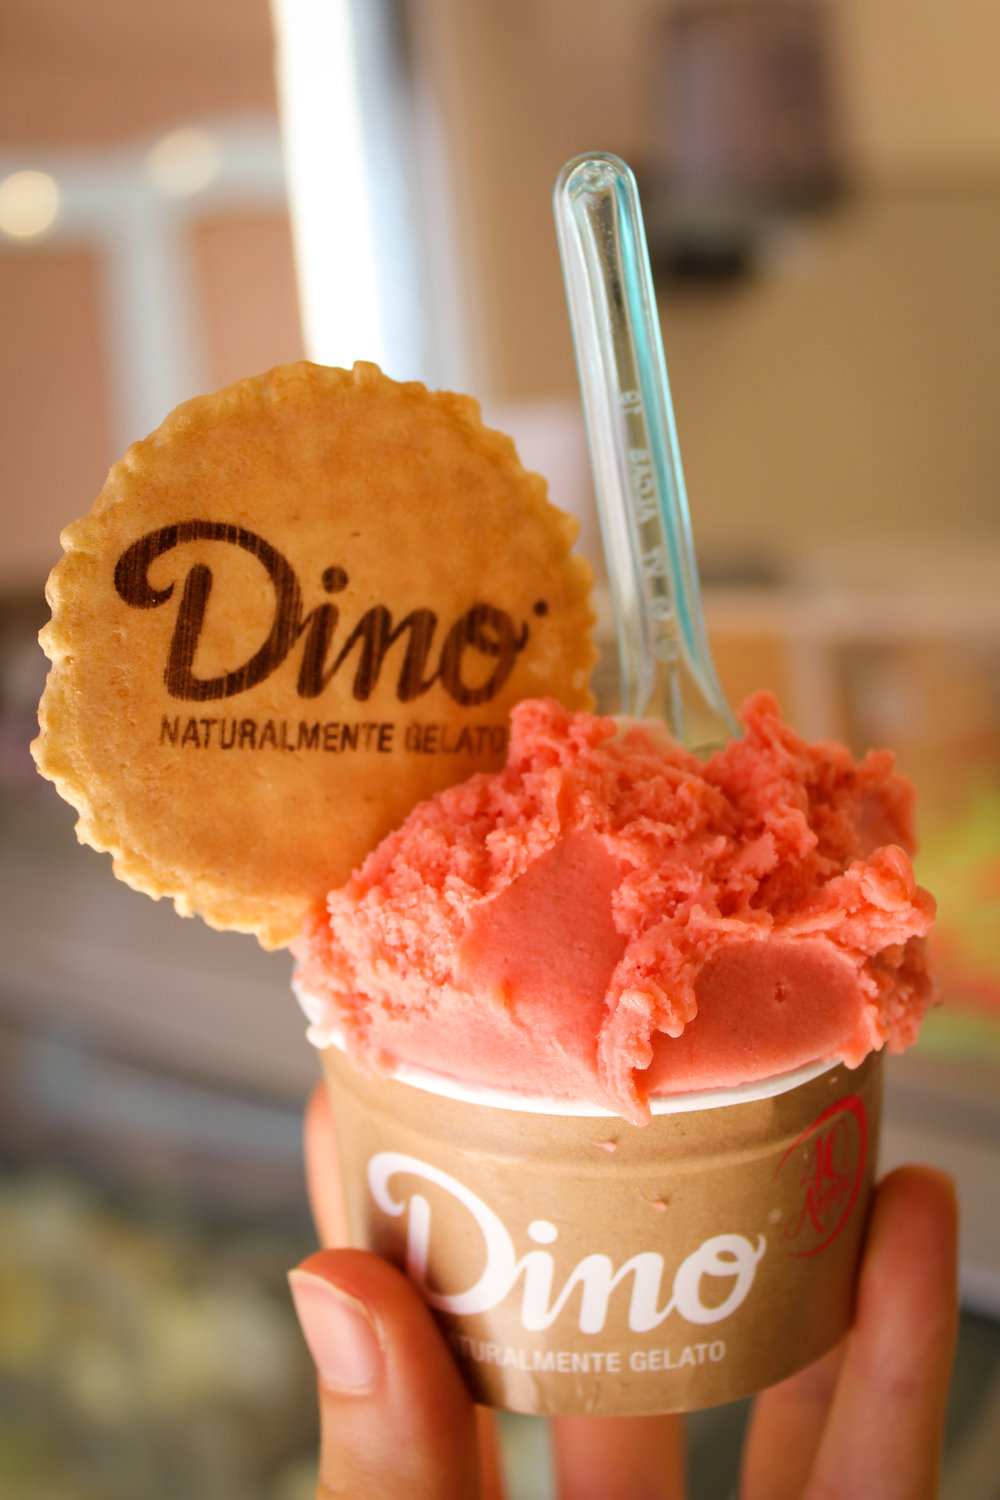 strawberry (and concealed banana) sorbets from Dino